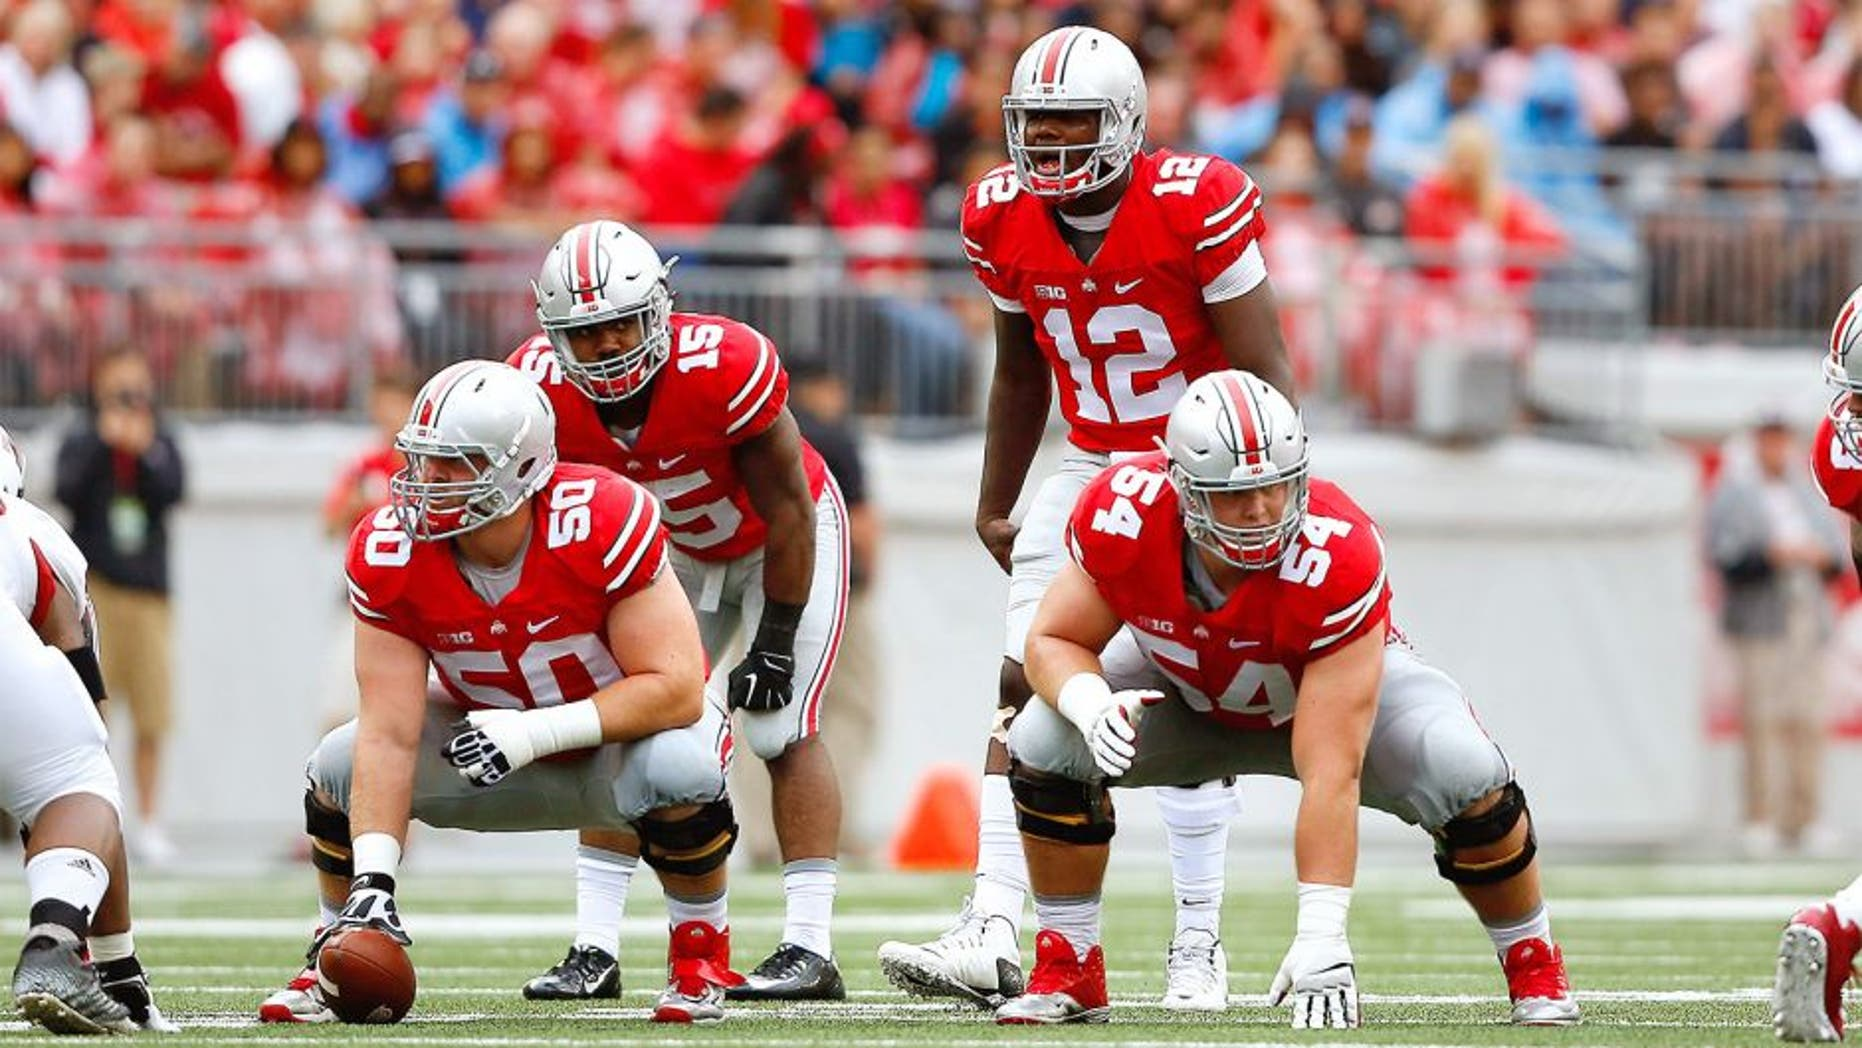 Sep 19, 2015; Columbus, OH, USA; Ohio State Buckeyes offensive lineman Jacoby Boren (50) and Billy Price (54) with Buckeyes quarterback Cardale Jones (12) and running back Ezekiel Elliott (15) in the backfield during the game versus the Northern Illinois Huskies at Ohio Stadium. Ohio State won the game 20-13. Mandatory Credit: Joe Maiorana-USA TODAY Sports